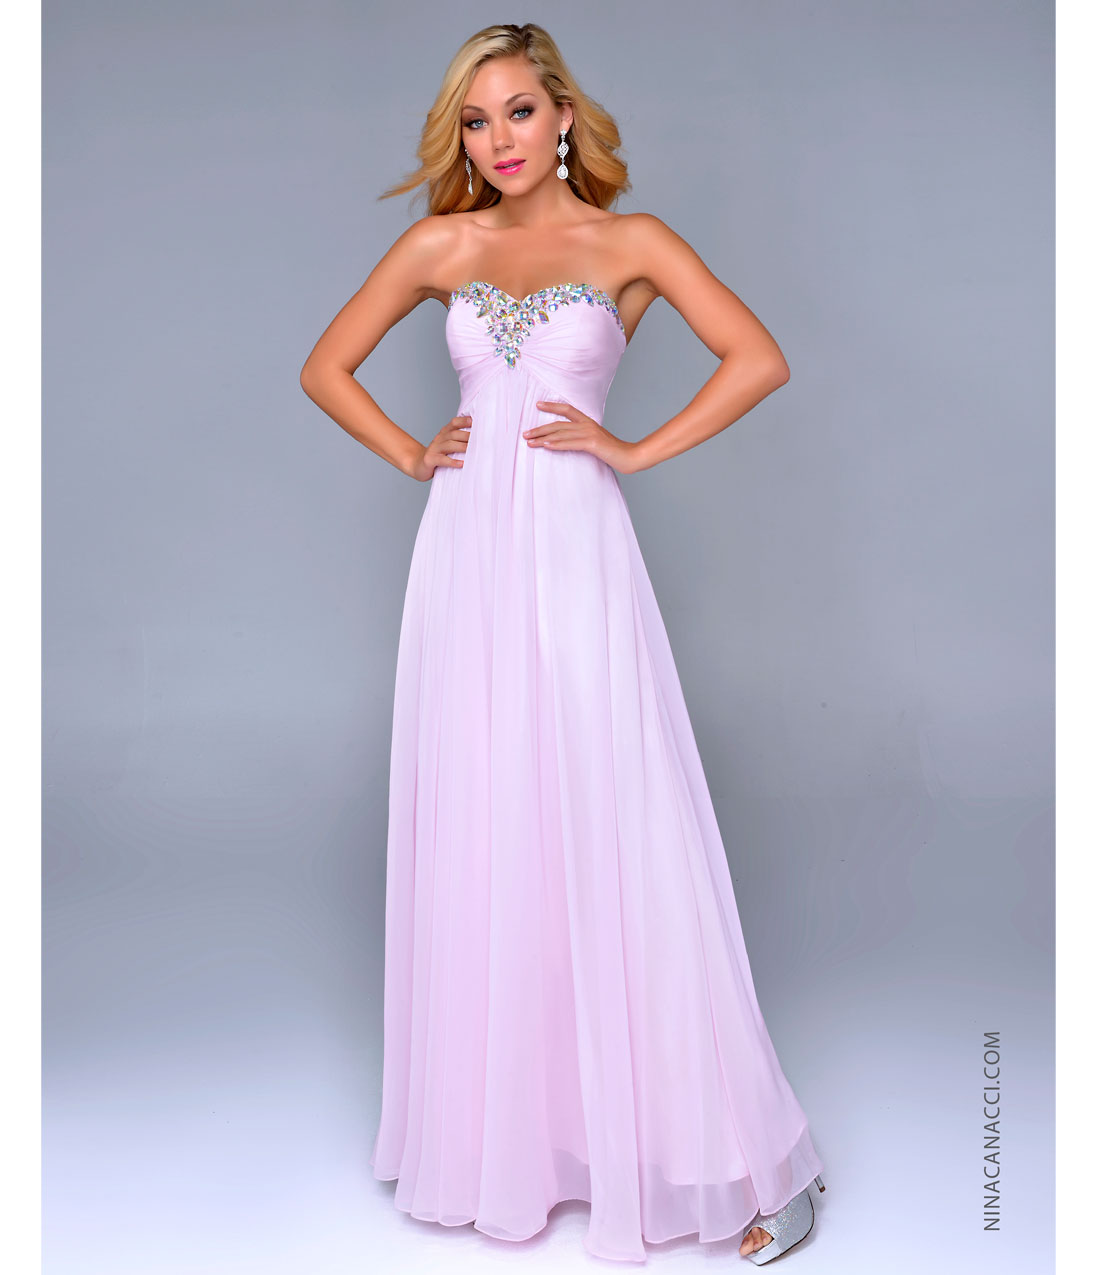 Prom Dresses Baby Pink - Holiday Dresses